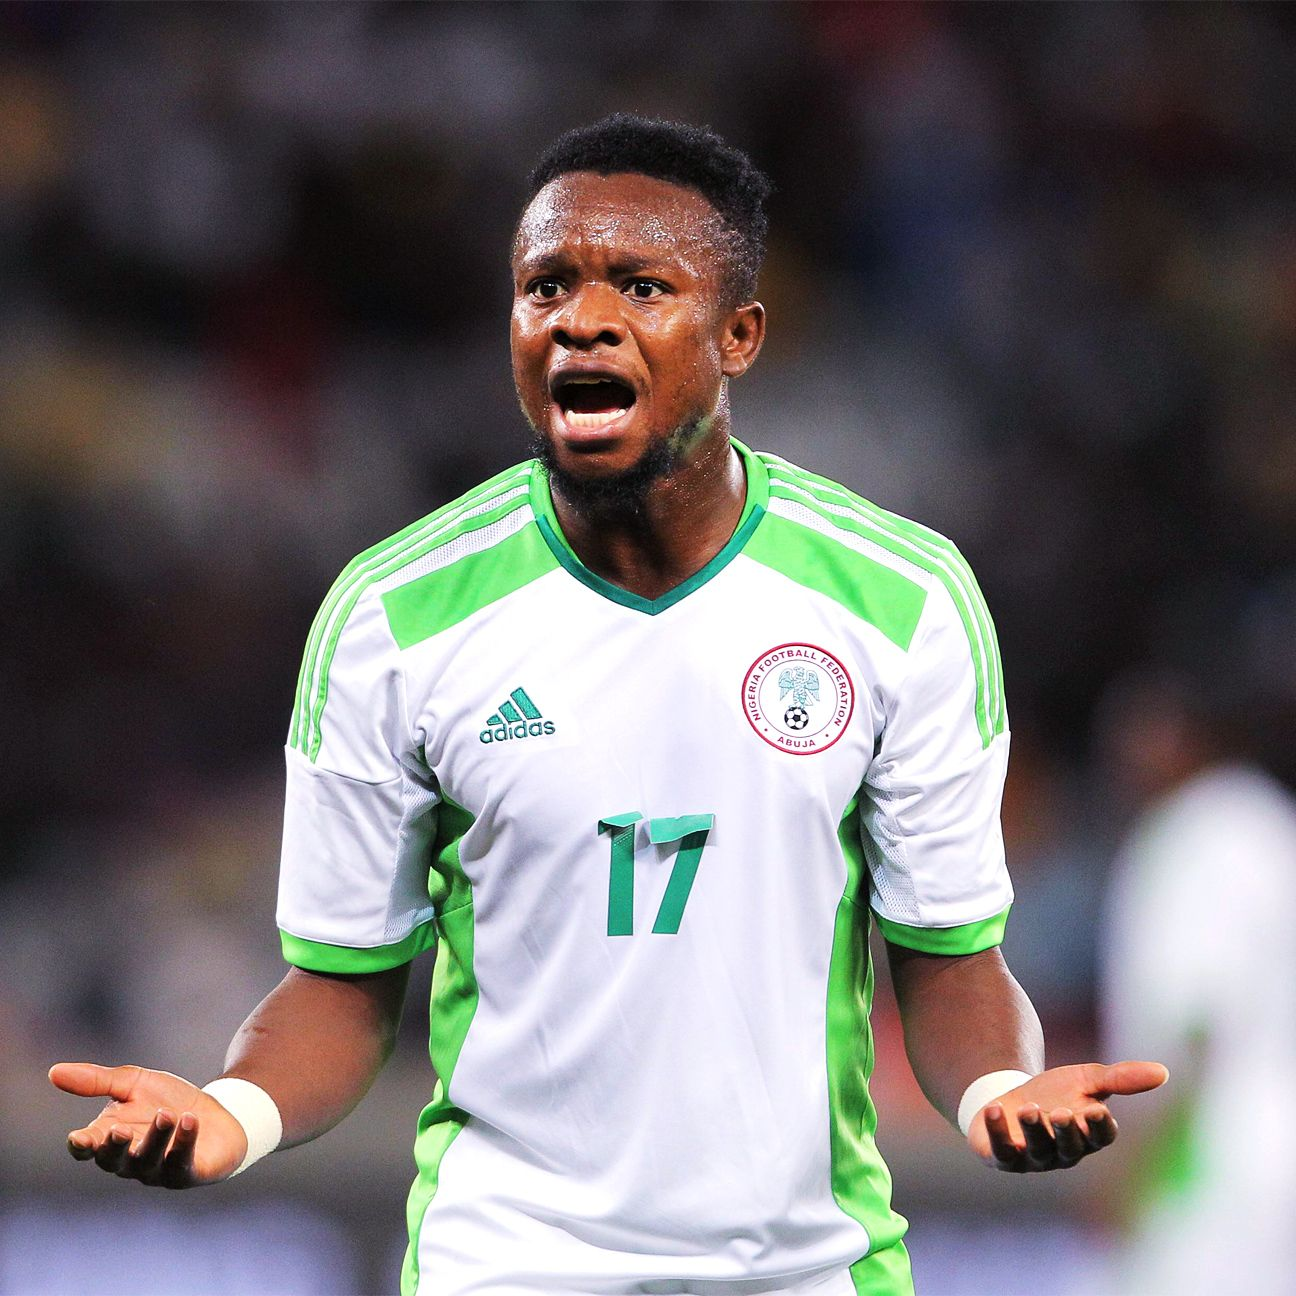 Ogenyi Onzai and Nigeria have won just two of their last 10 matches.